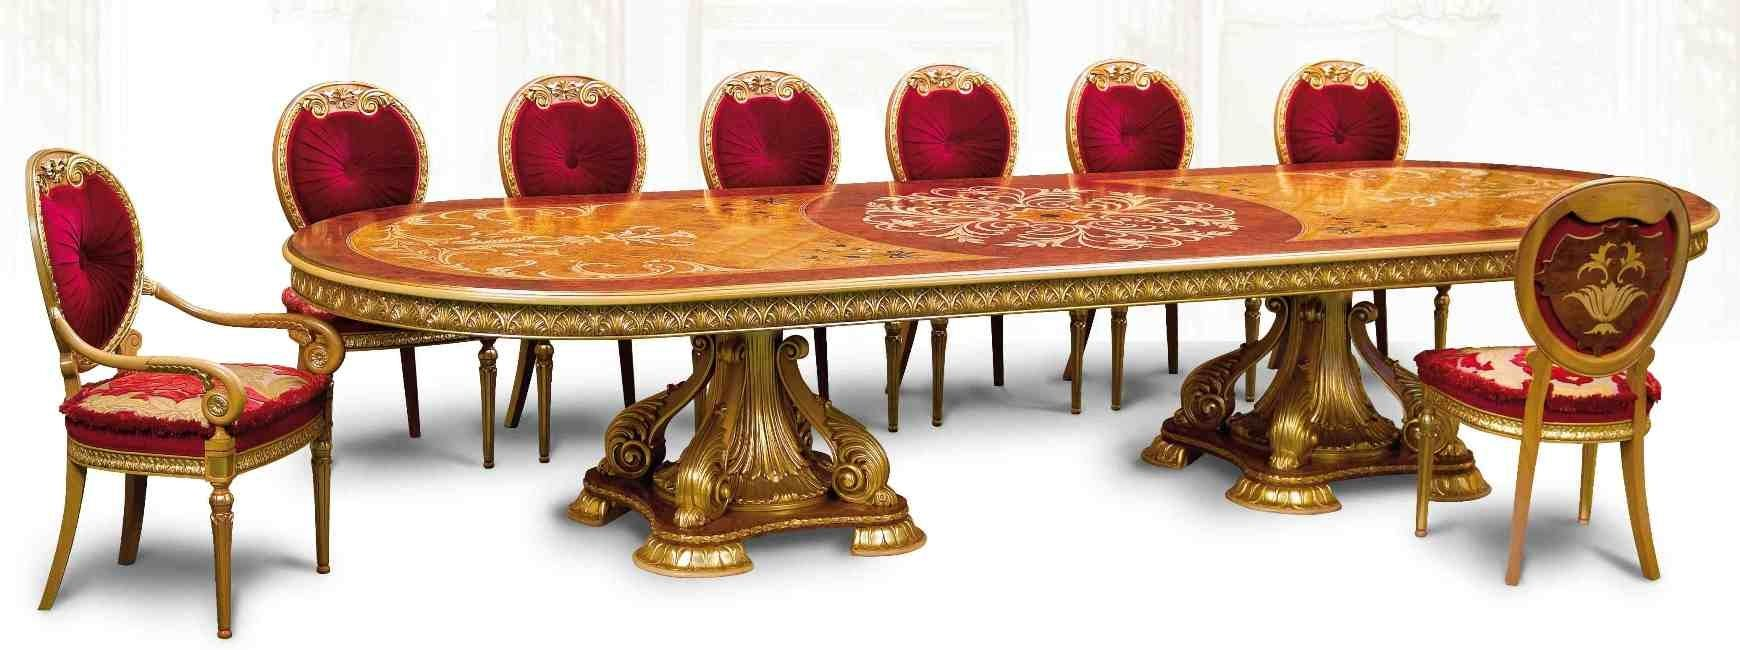 Luxury Handmade Furniture Imported From Europe Many Sizeatching Items Available Empire Style Dining Table